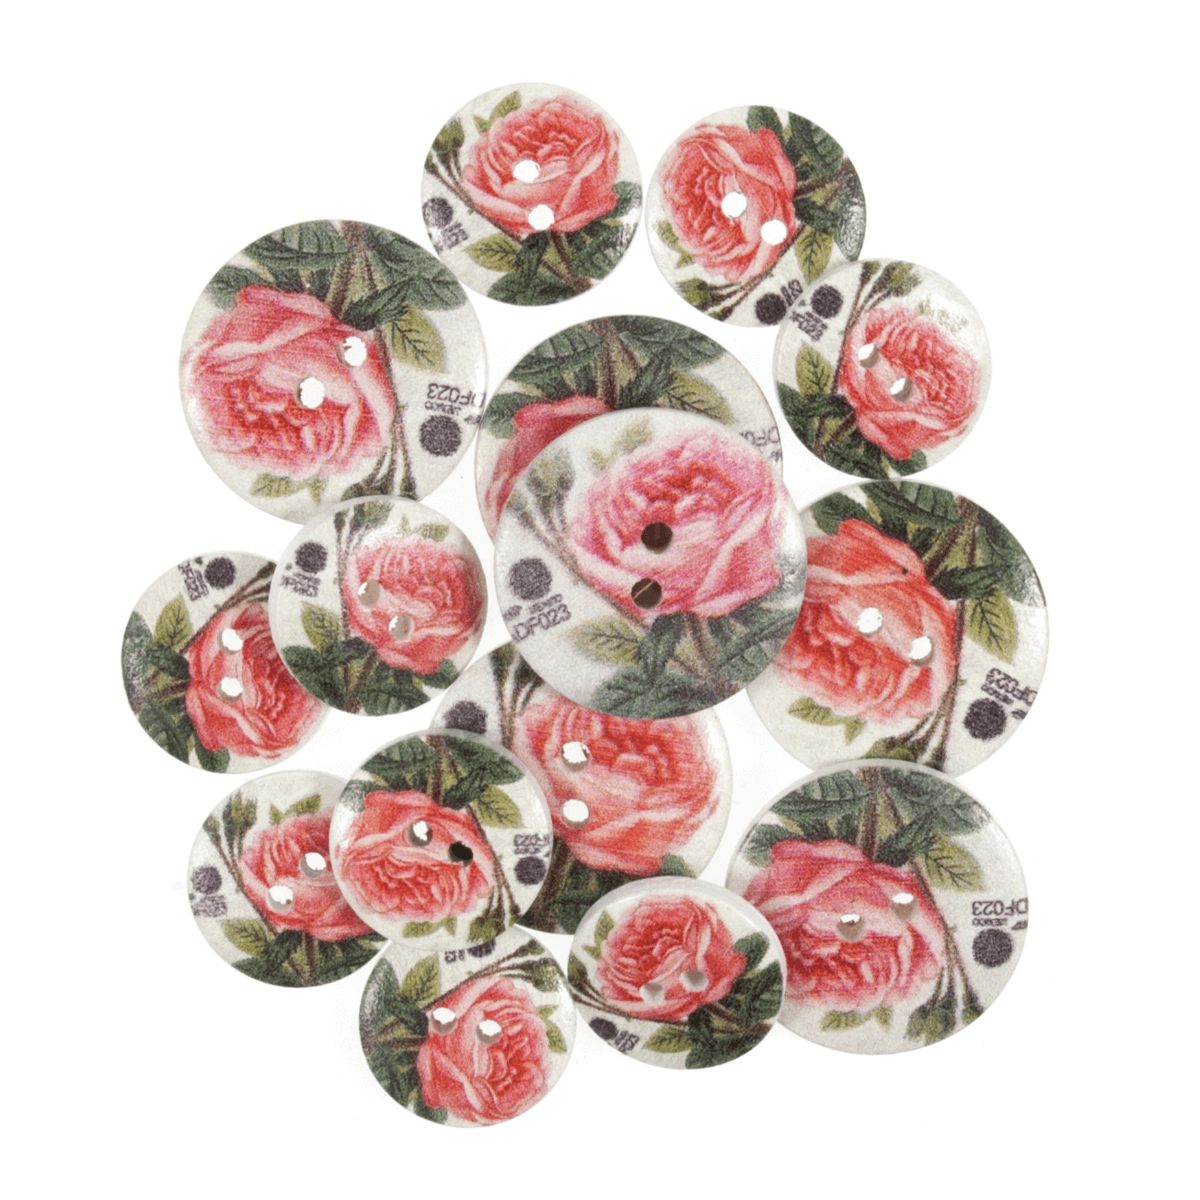 15 x Assorted Mexican Rose  Wooden Craft Buttons 18mm - 25mm